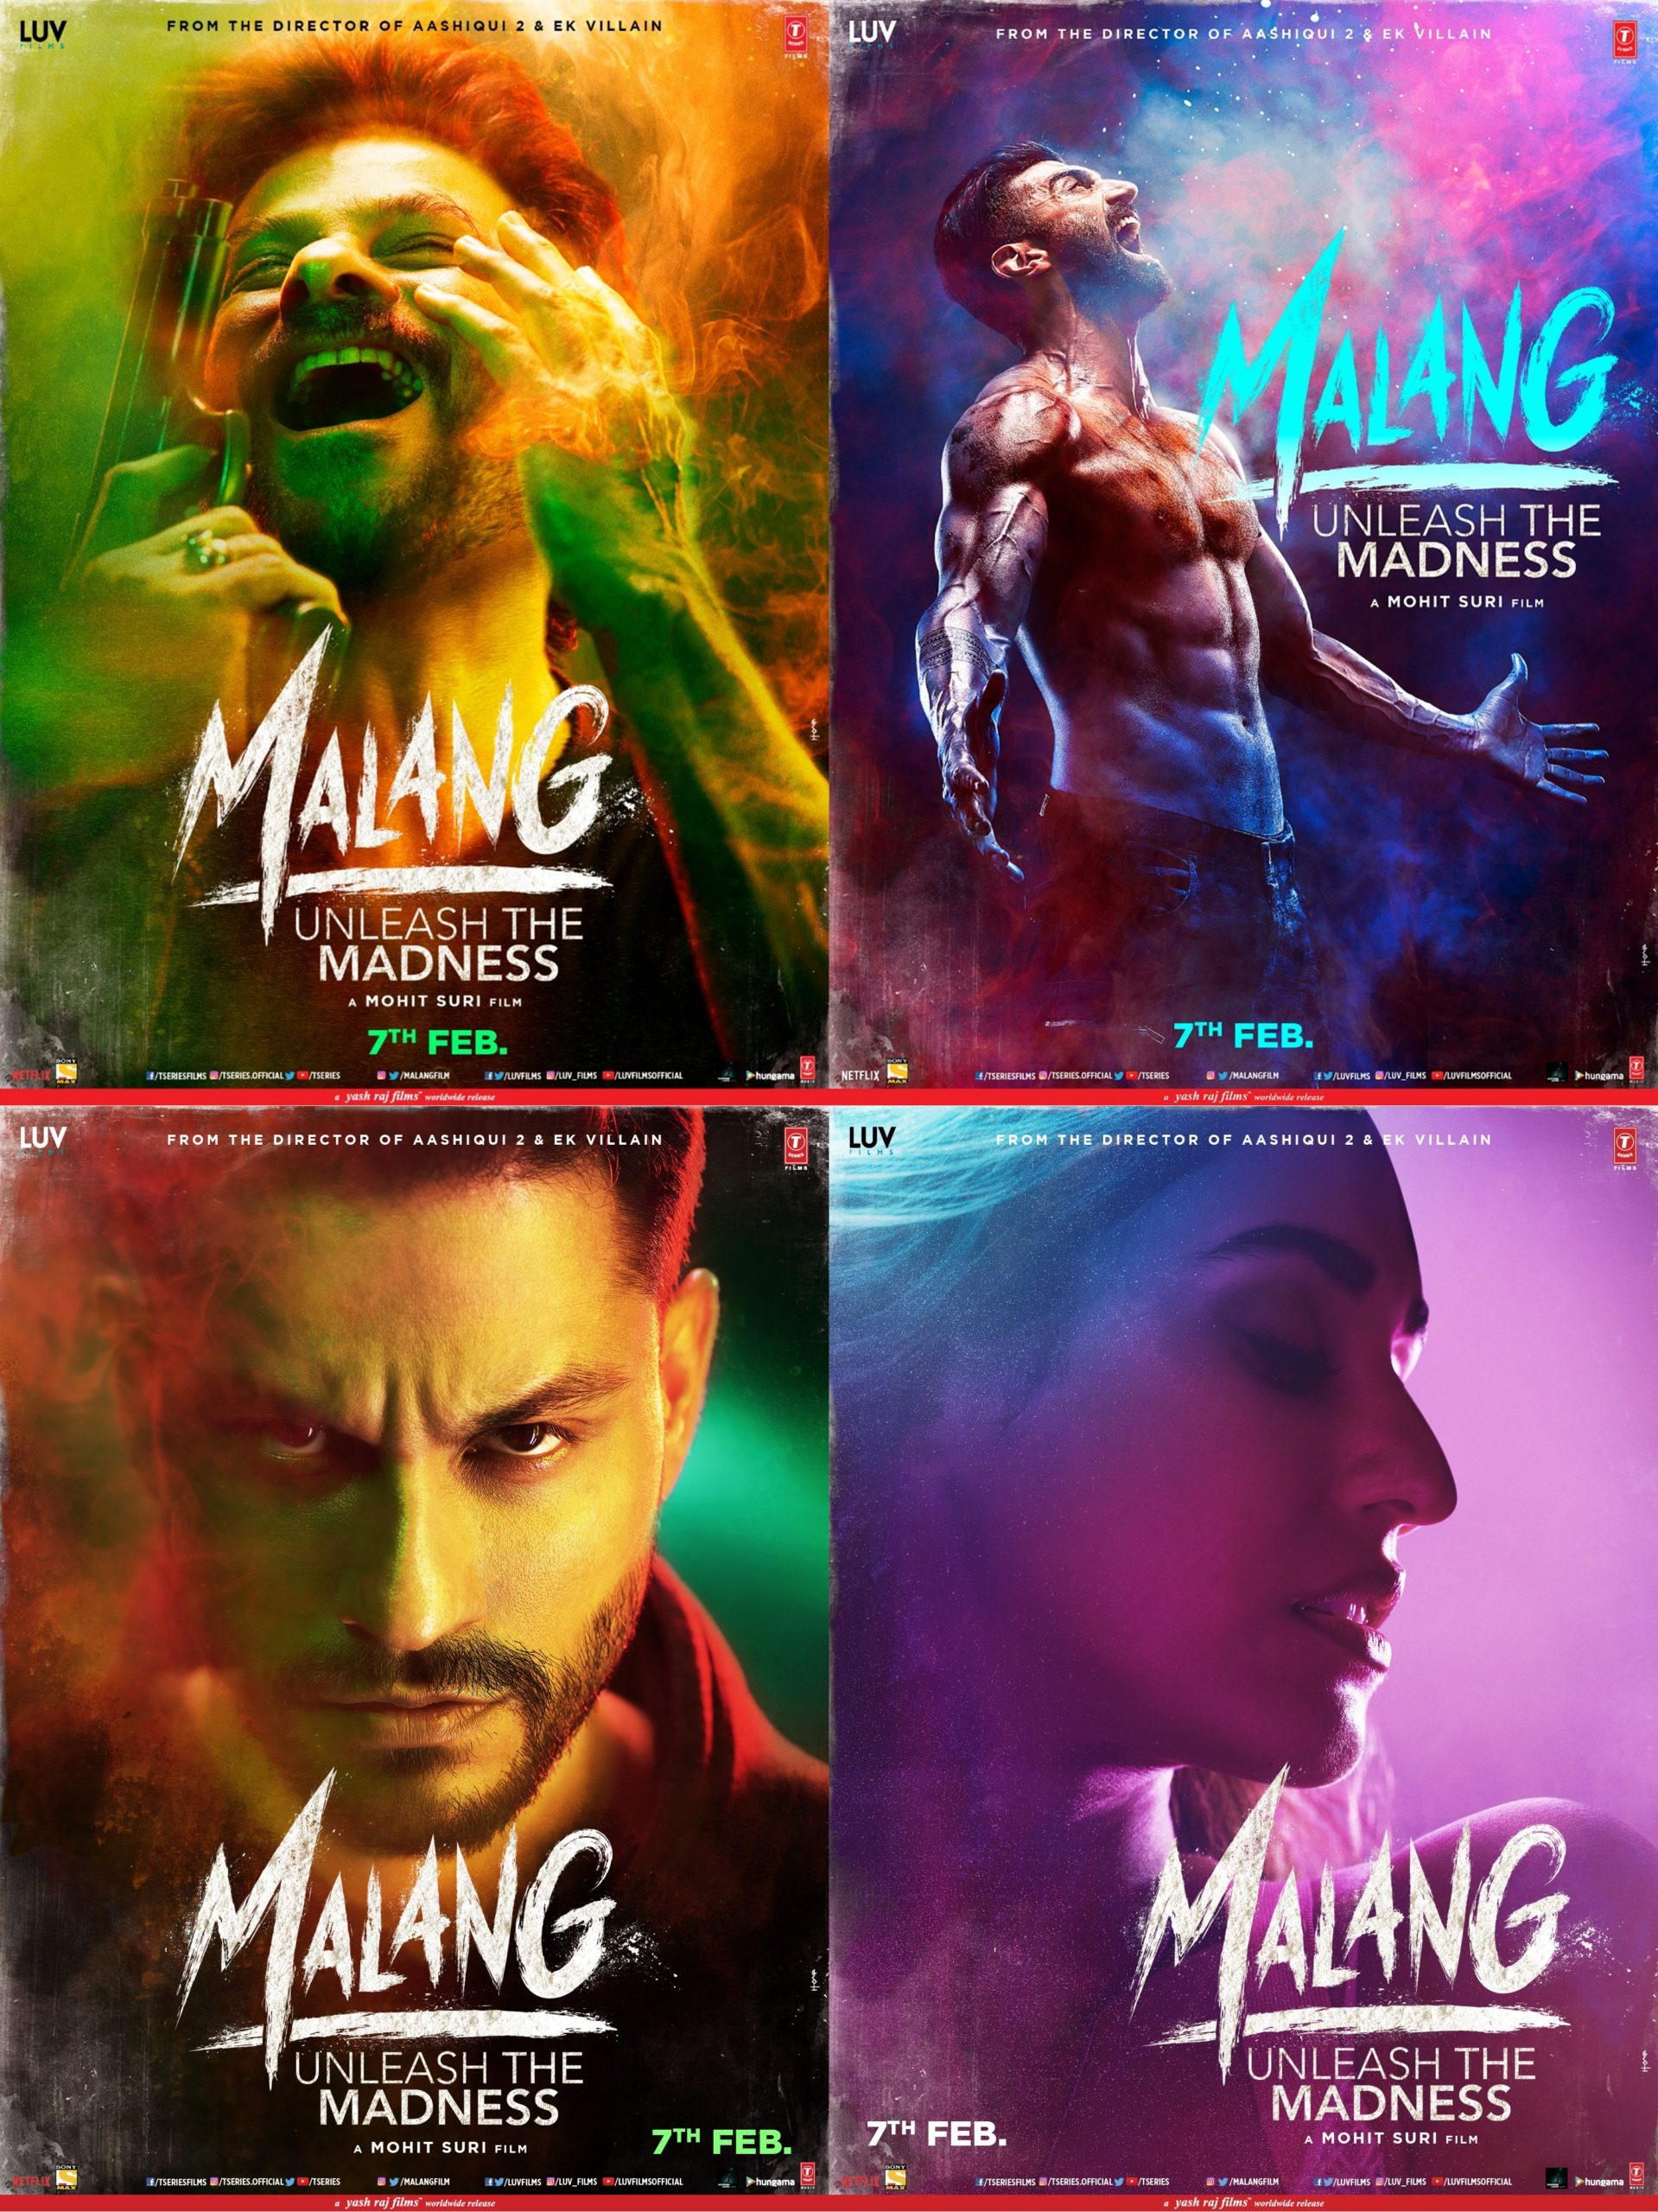 Exclusive Malang Movie Posters Are Available Now Live Cinema News